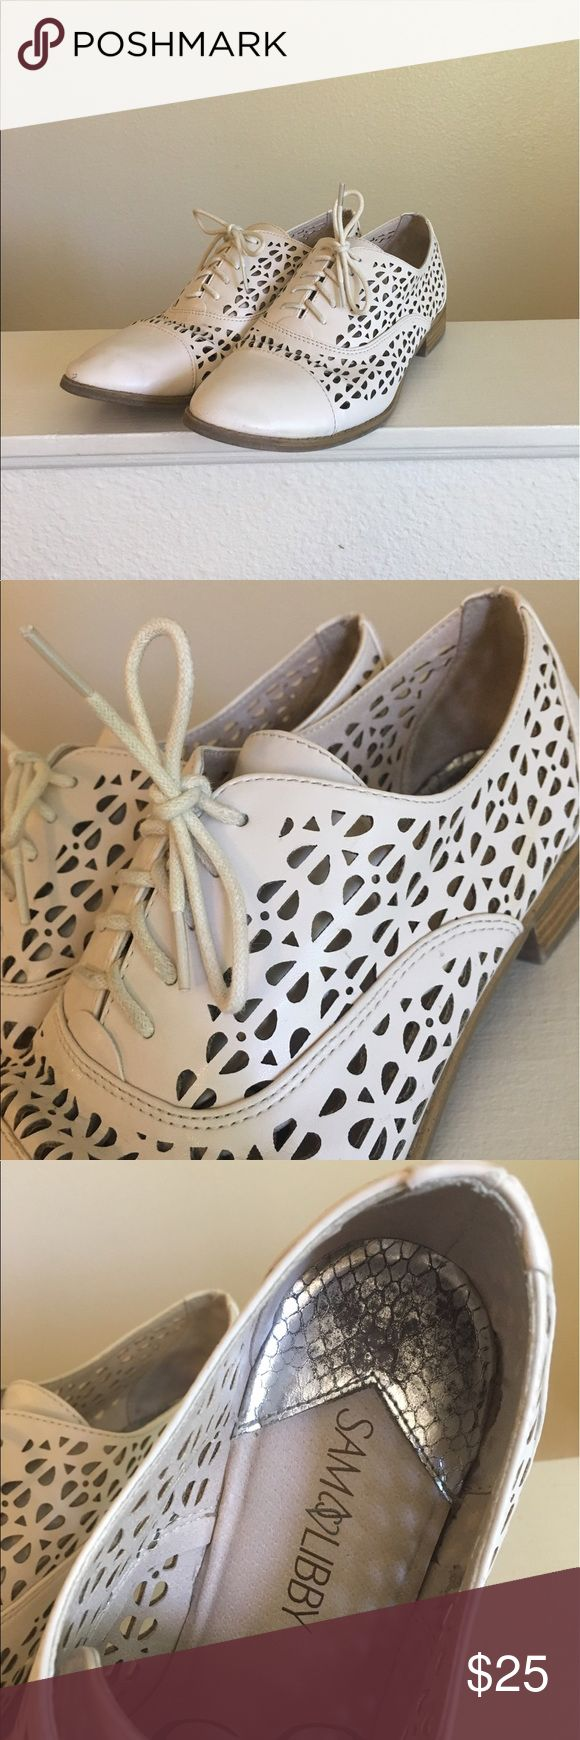 Sam & Libby Perforated Oxfords Size 9 cream colored oxfords by Sam & Libby. Flat with lace up tops. Some signs of wear on the toes and the sides of the shoes as pictured. Super cute and unique!   I ship daily - excluding Sundays and holidays - and I store items in a smoke free, pet free environment. Open to offers; bundles discounted! Sam & Libby Shoes Flats & Loafers